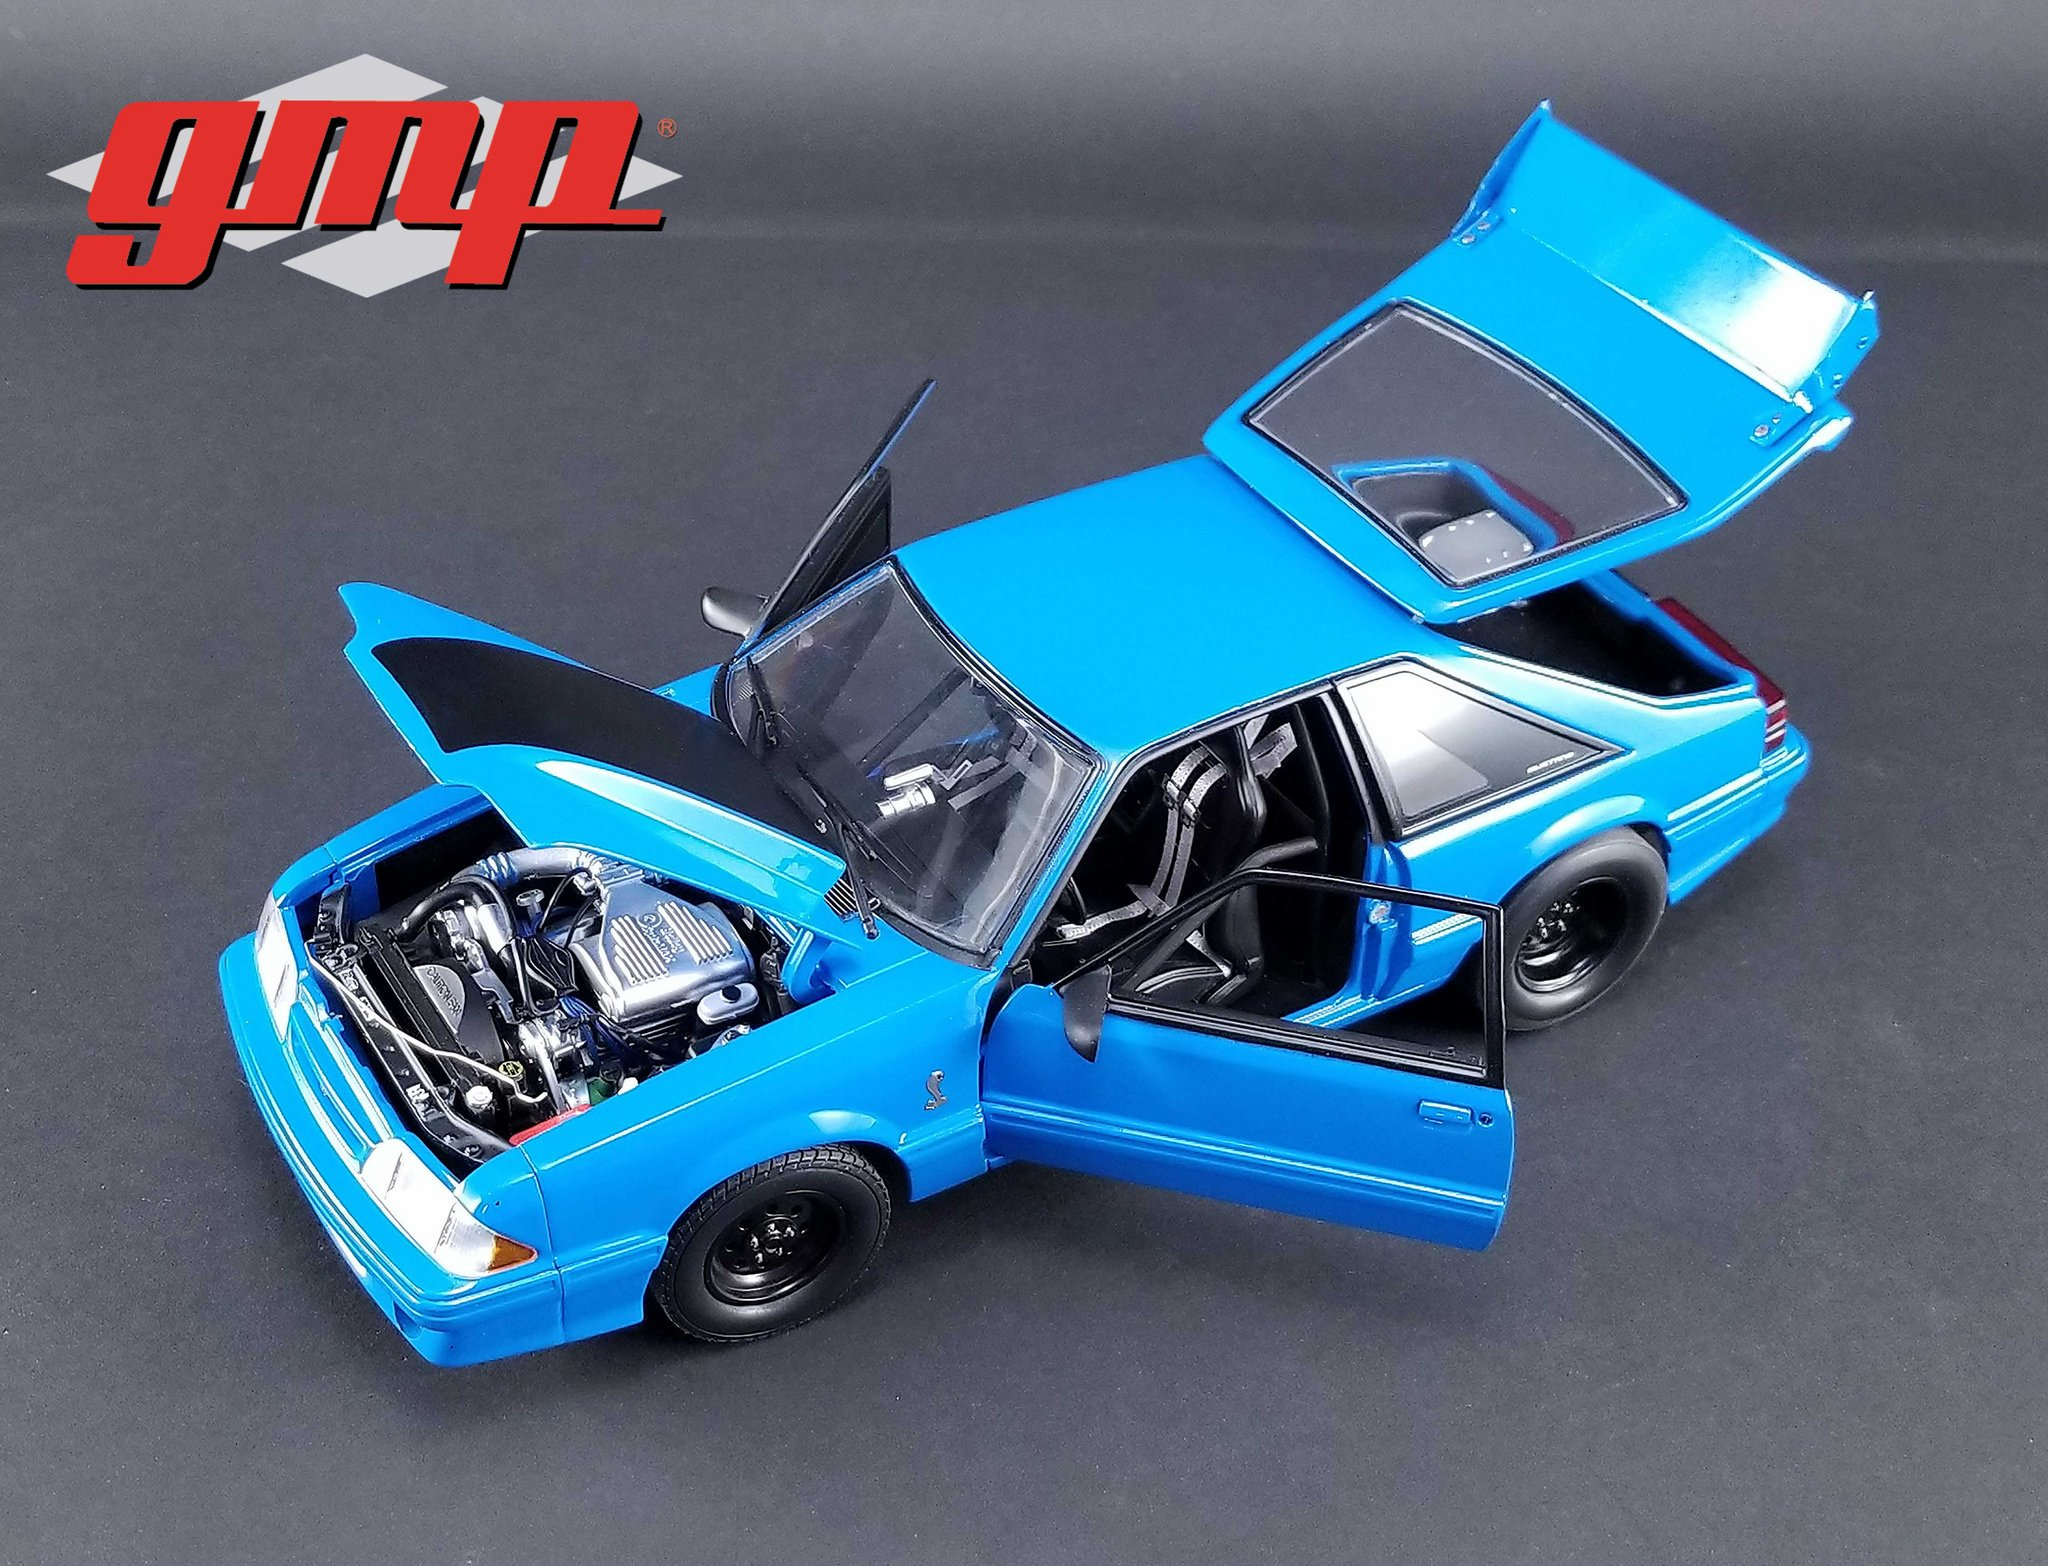 1993 Ford Mustang Cobra Grabber Blue 1320 Drag Kings ''King Snake'' Limited Edition to 516 pieces Worldwide 1/18 Diecast Model Car by GMP 18881